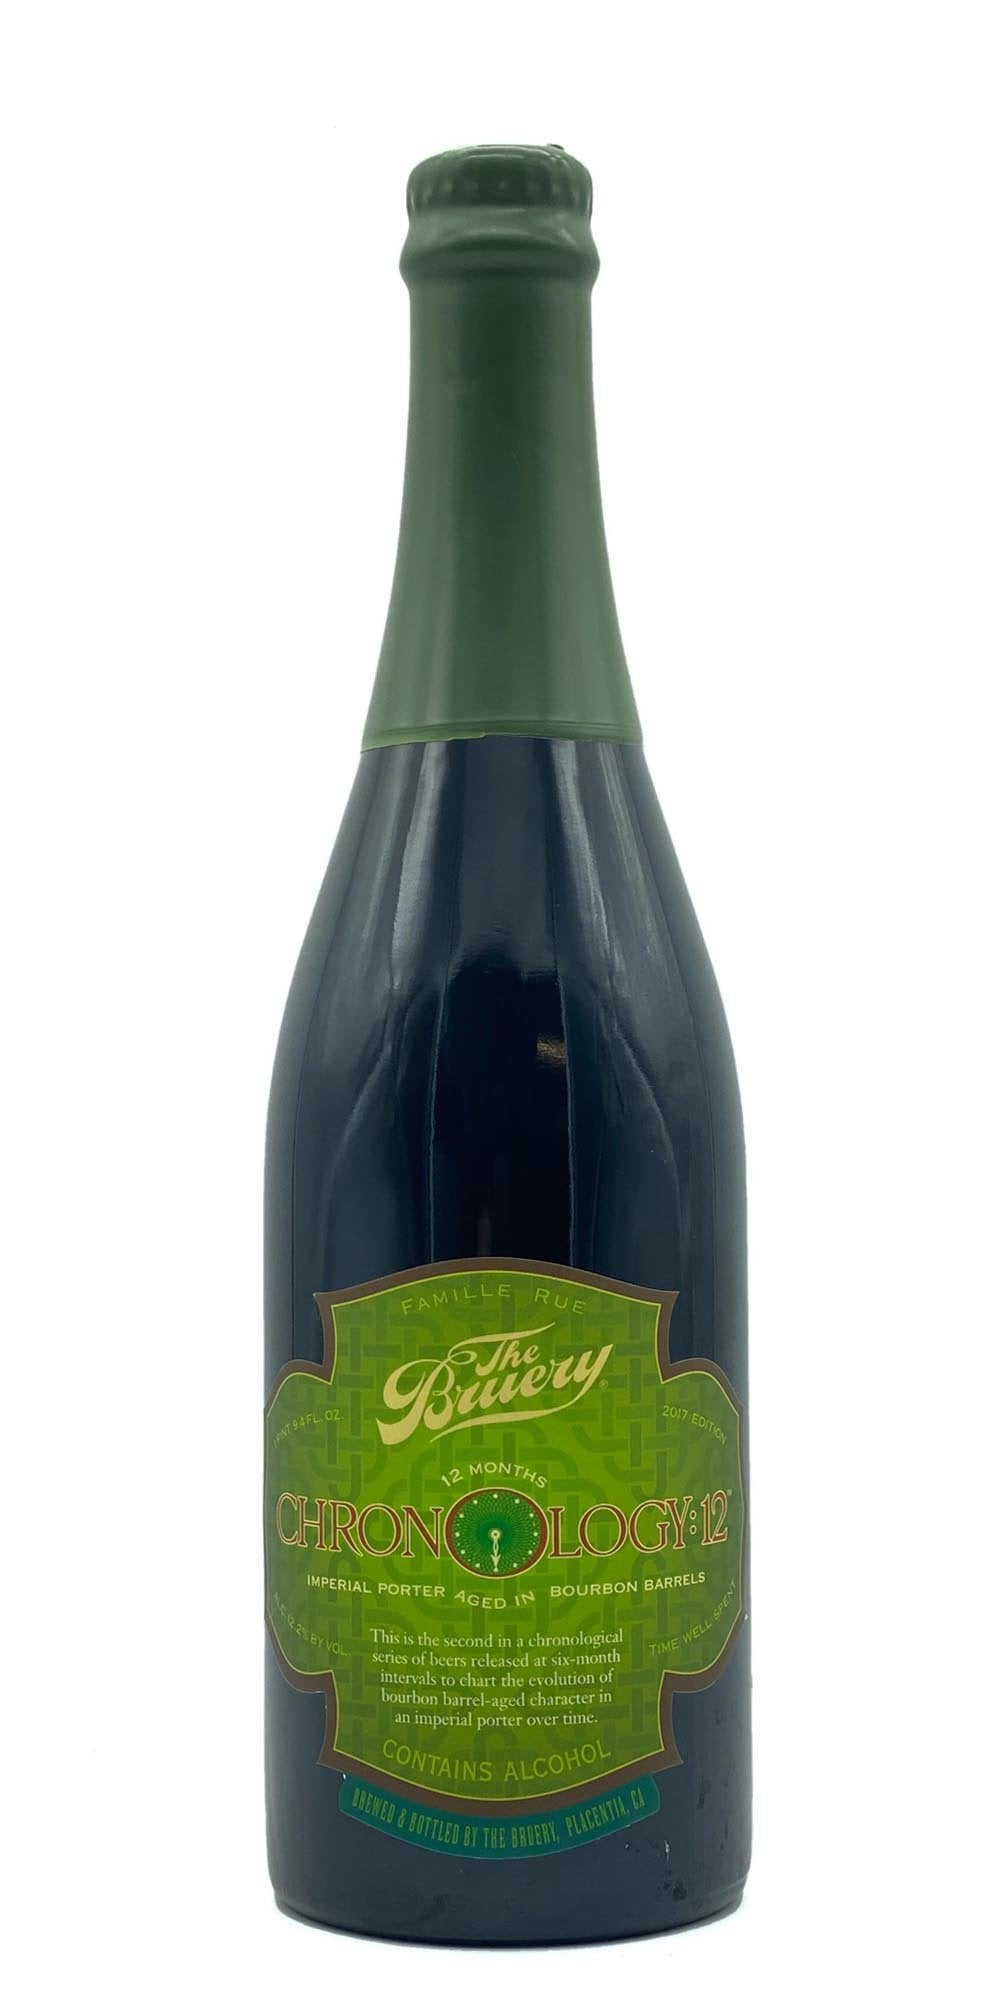 The Bruery - Chronology: 12 - Imperial Porter 2017